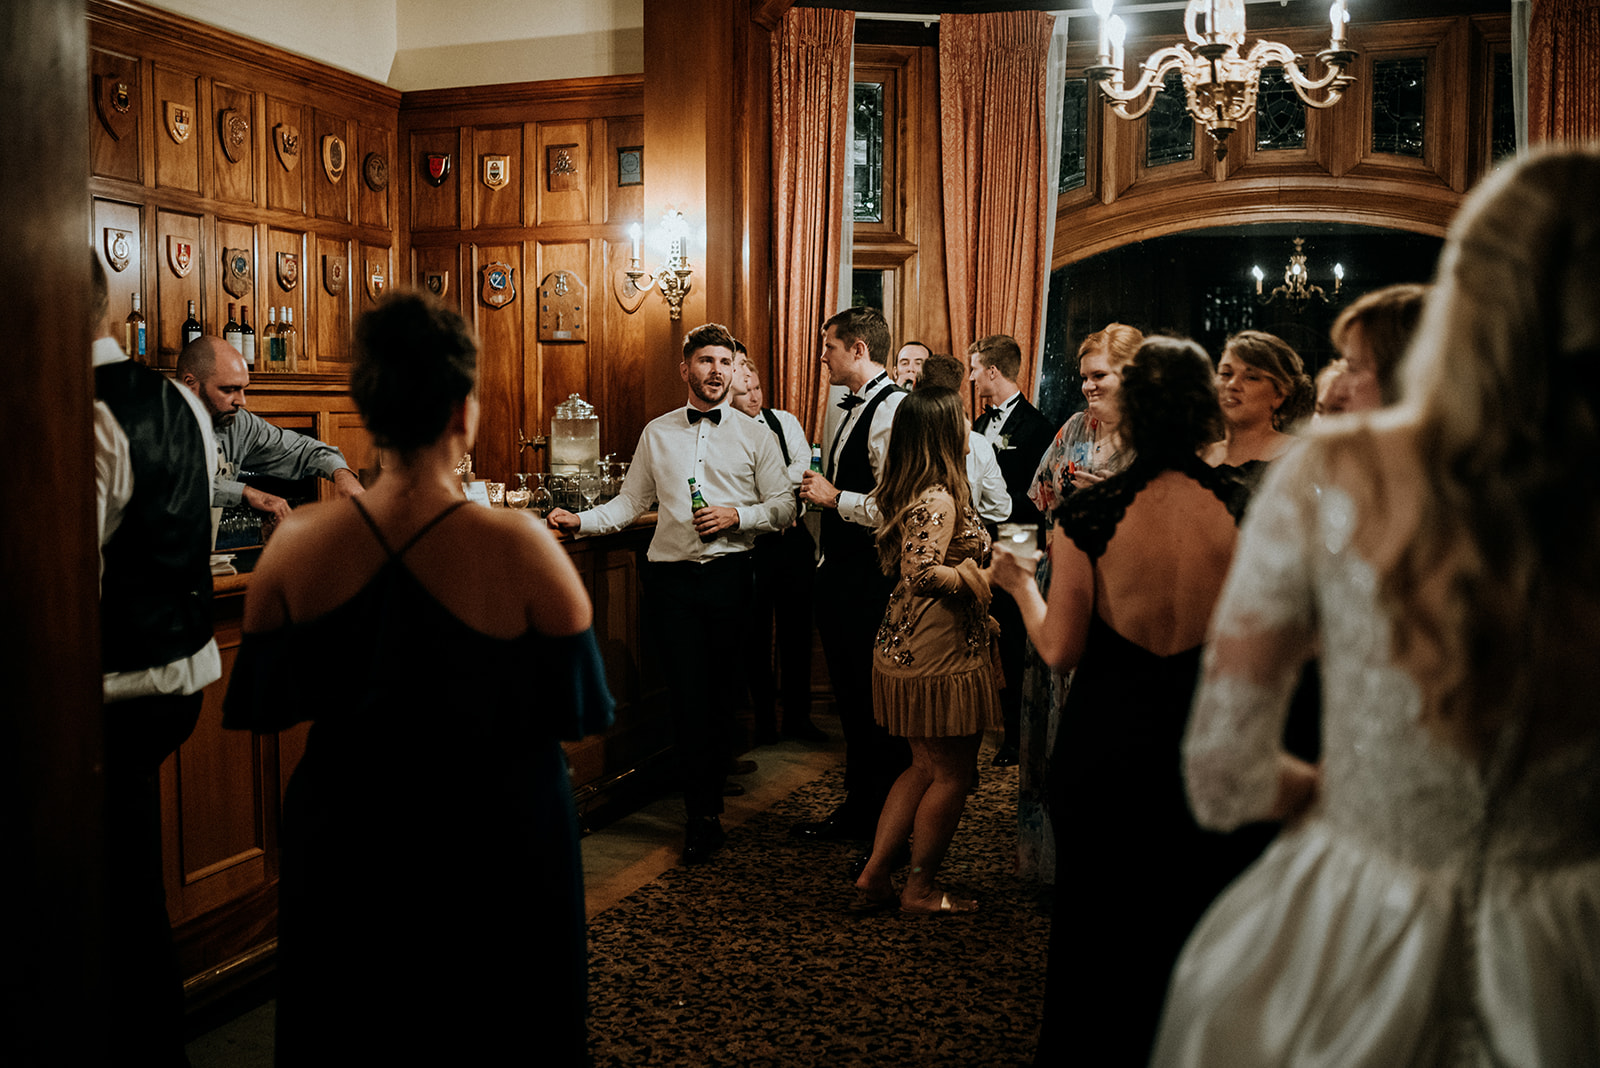 Hatley Castle Wedding - Victoria Wedding Photographer Kim Jay-79.jpg